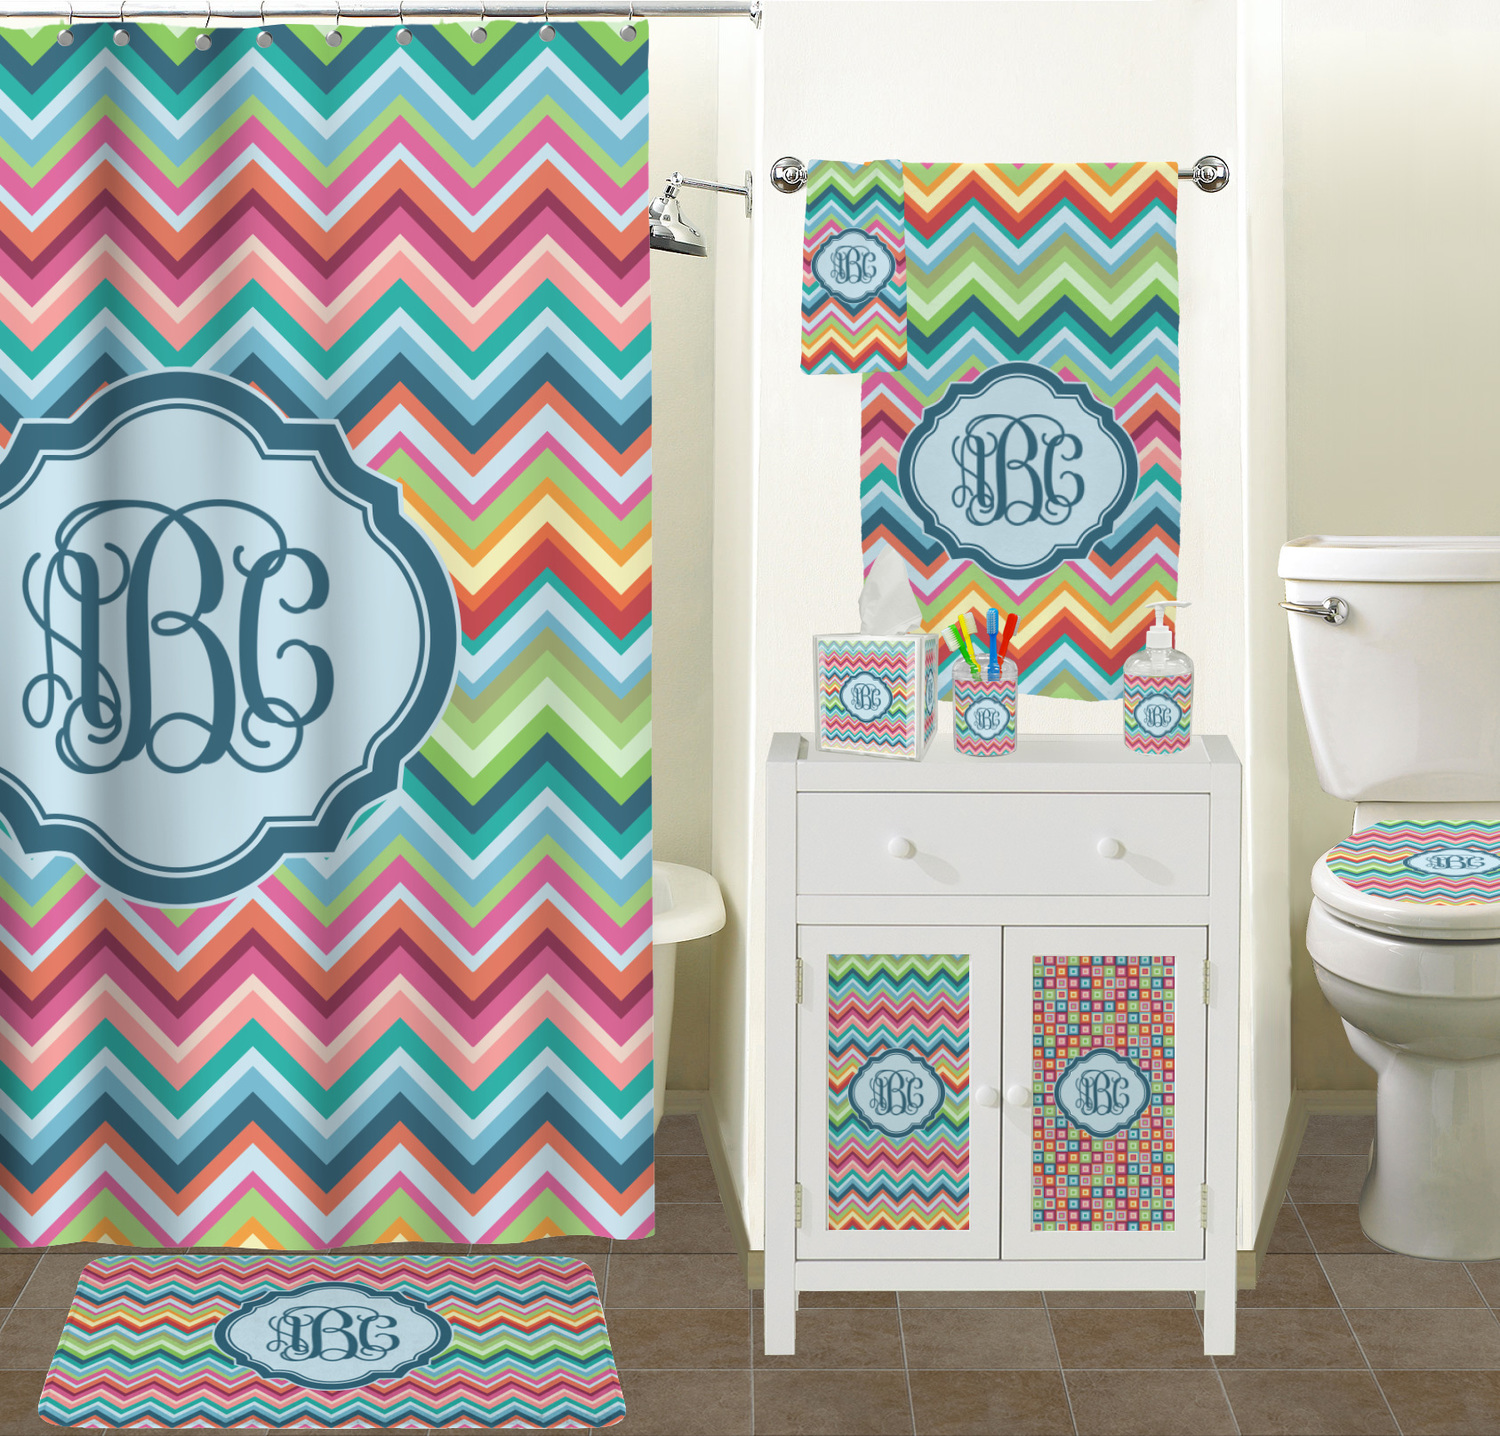 Dazzling Monogrammed Bath Towels for Bathroom Ideas: Beautiful Monogrammed Bath Towels With Personalized Towel Of Monogrammed Towel Set Ideas